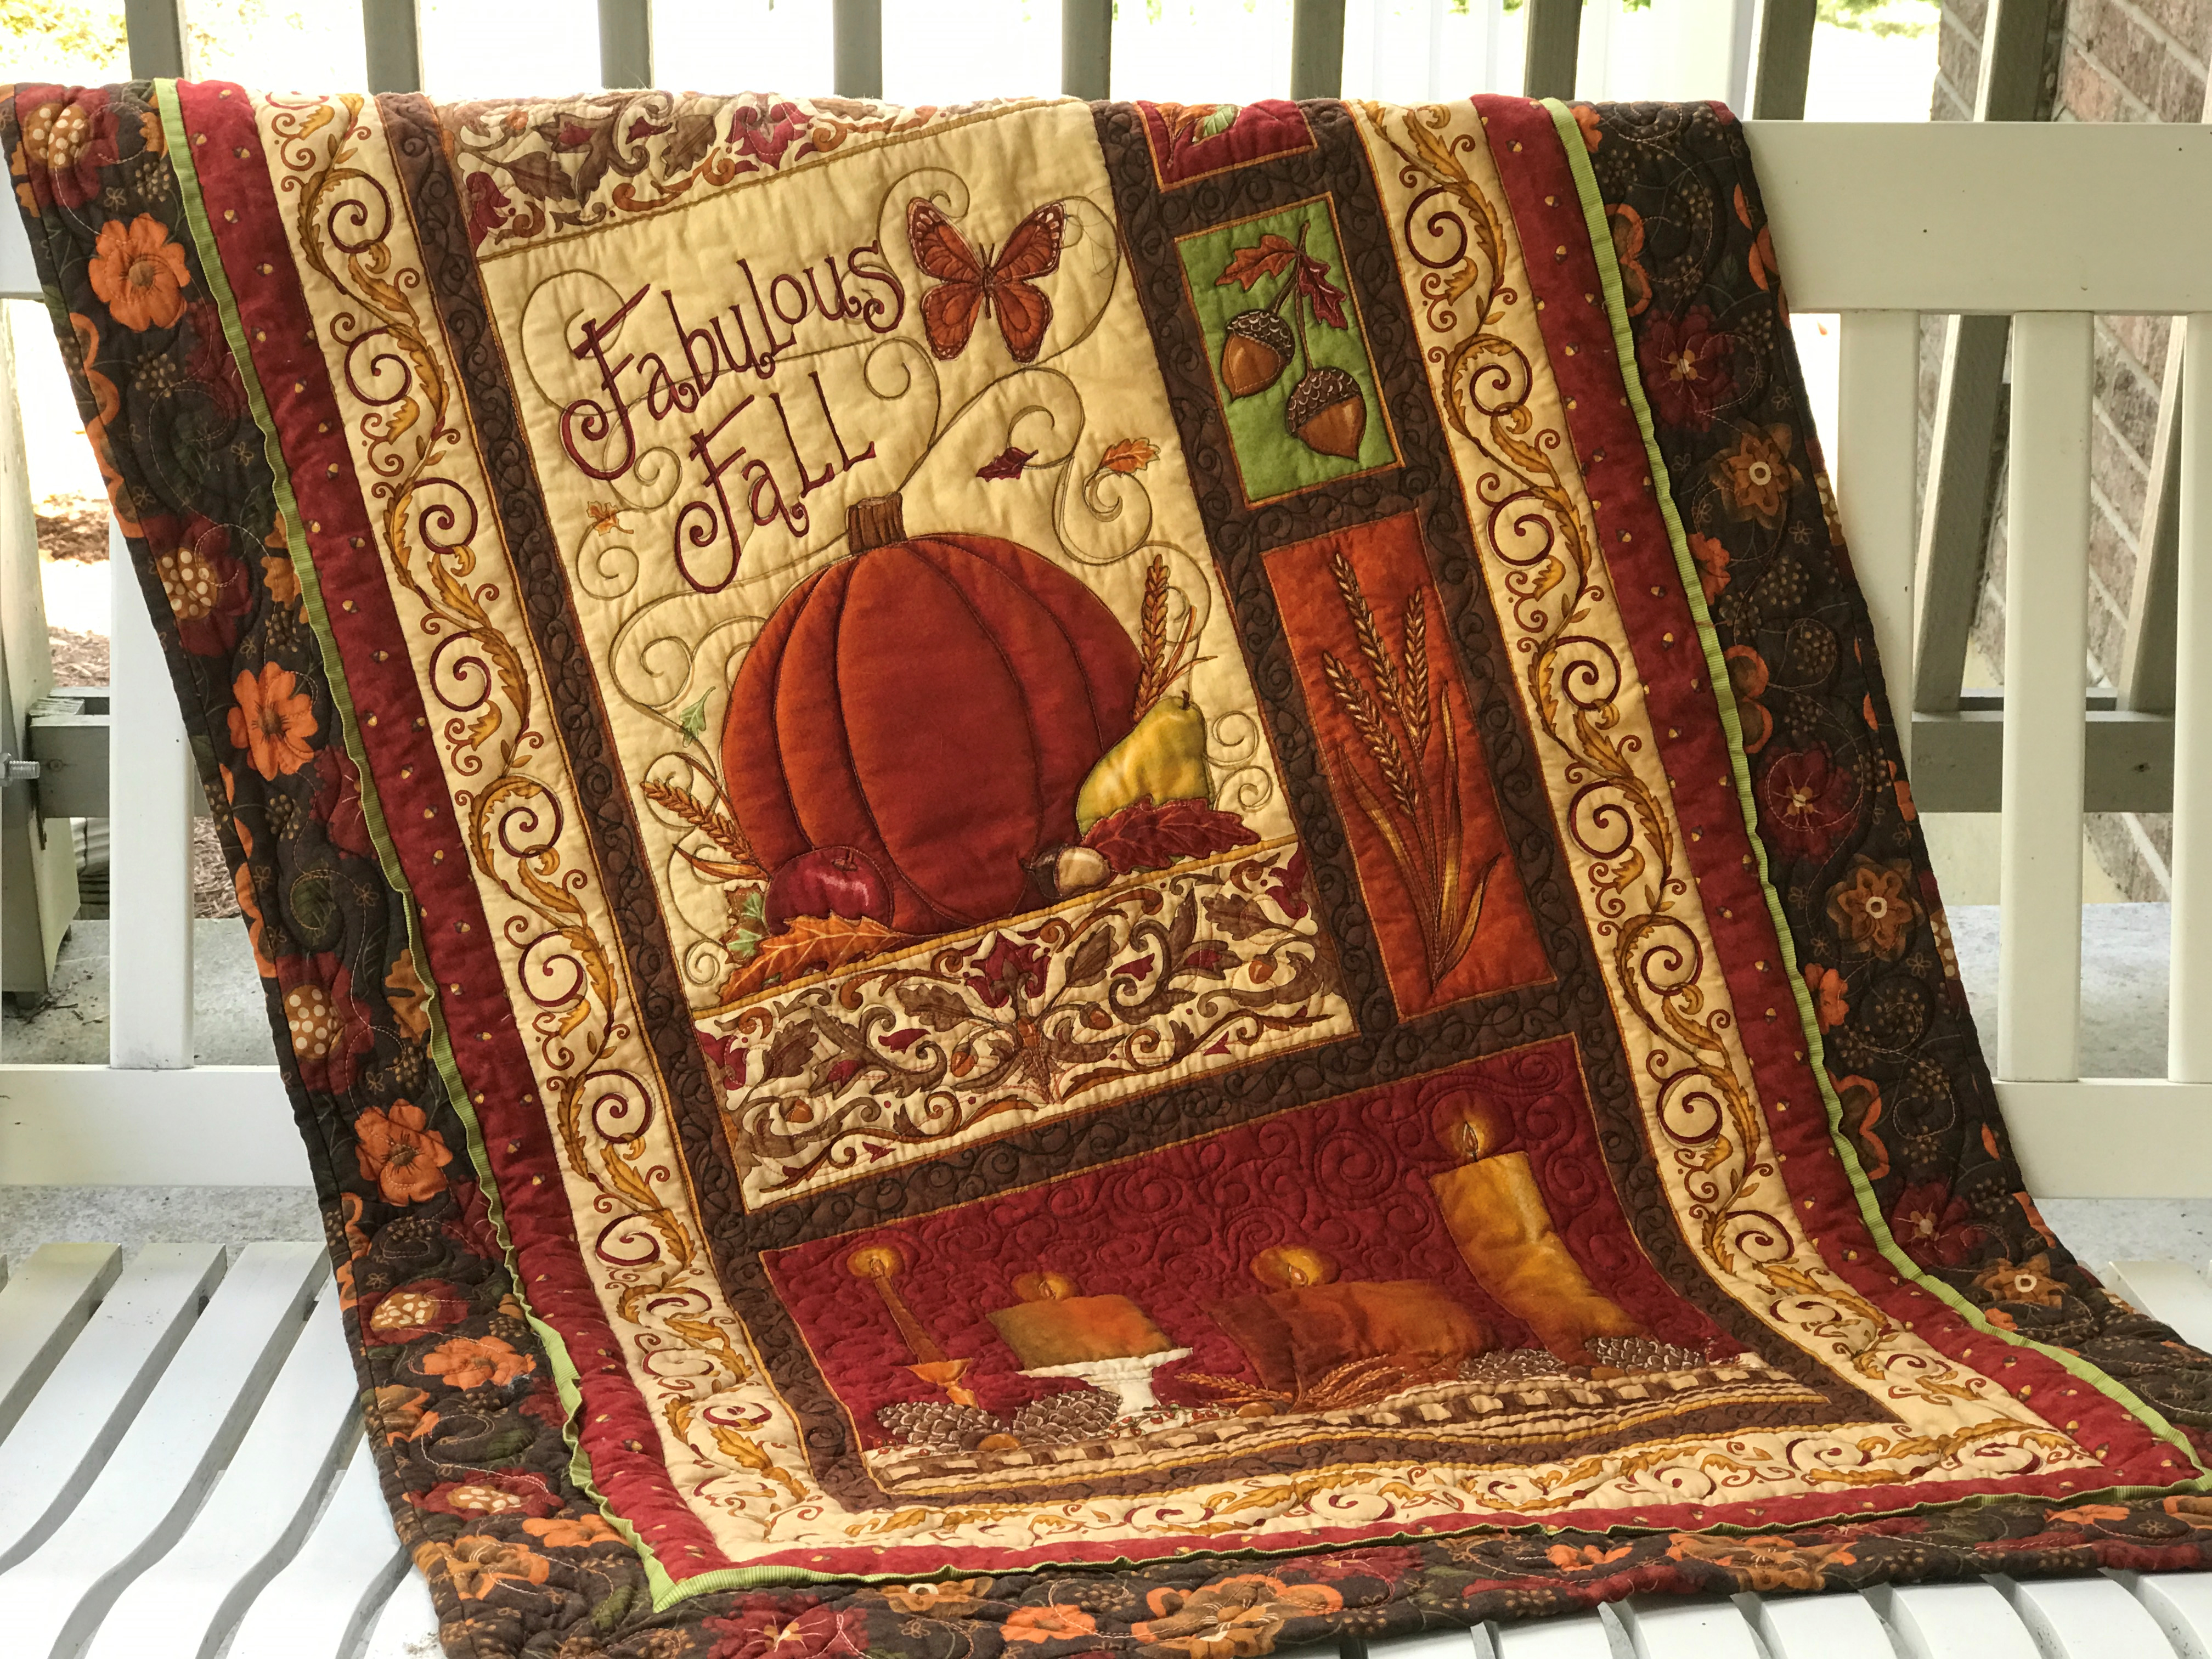 Image of quilt on swing.